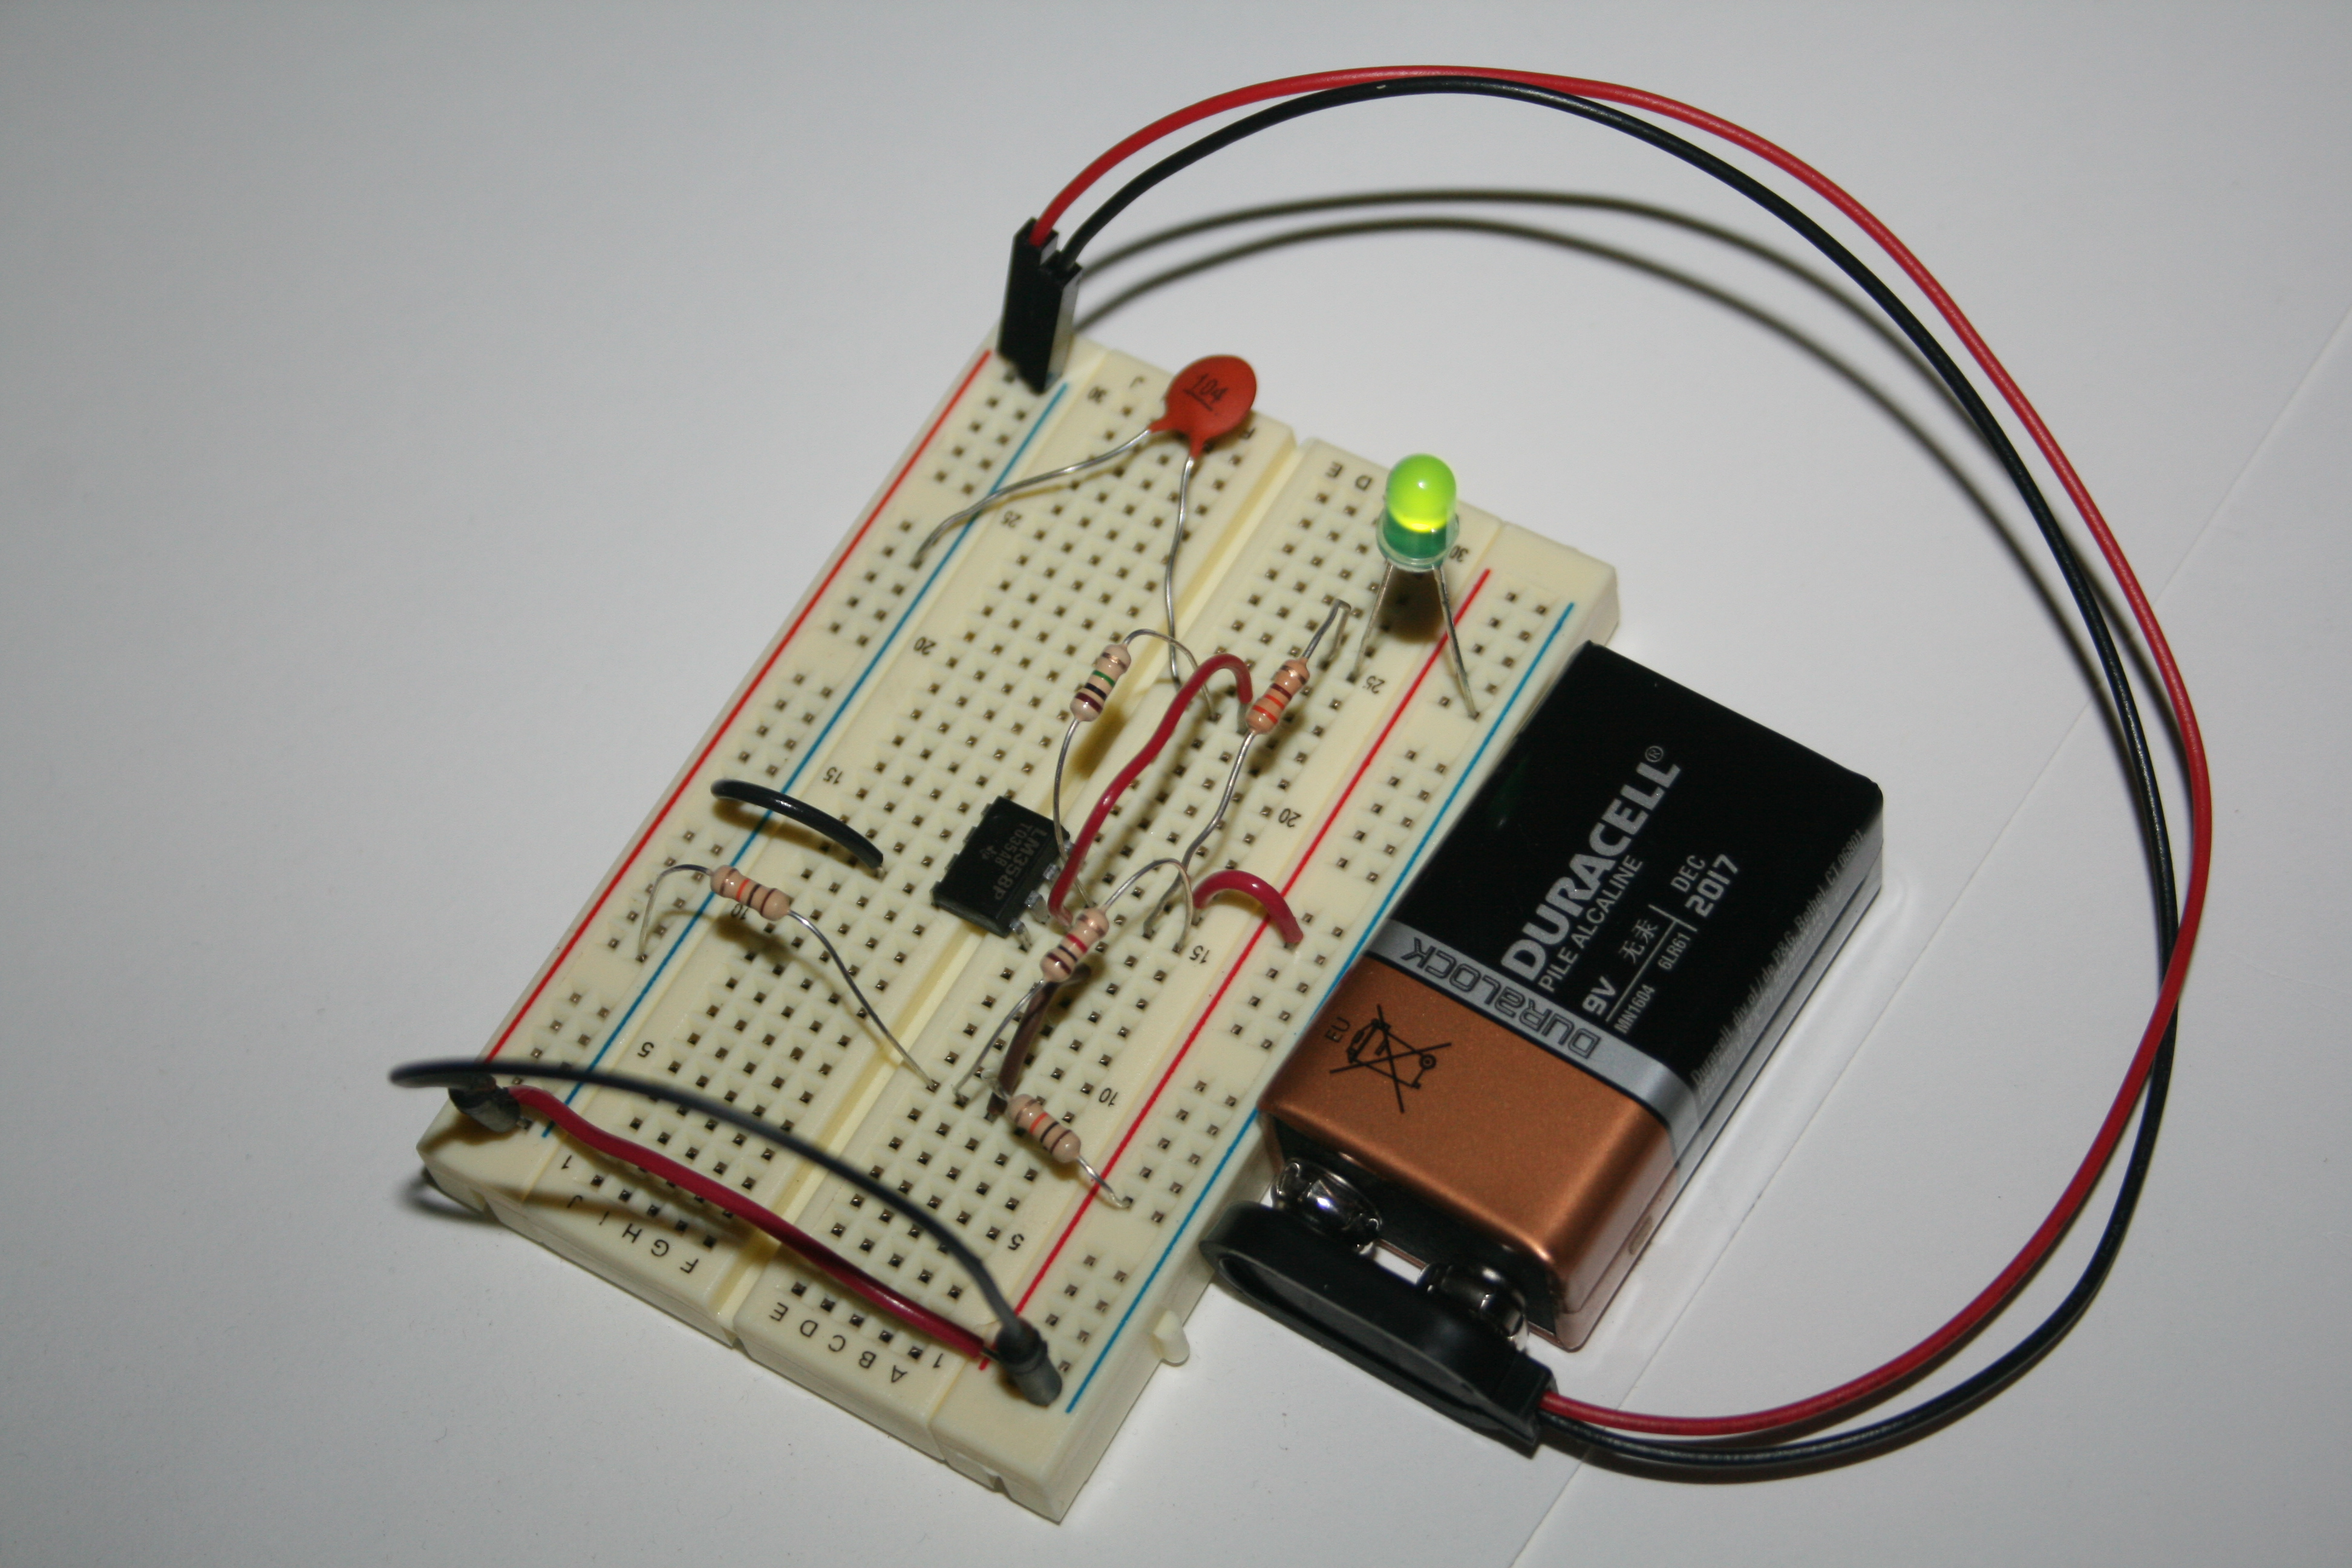 Betty Lise Anderson Electrical And Computing Engineering The Operational Amplifier Amplifiers Electronics Op Amp Oscillator